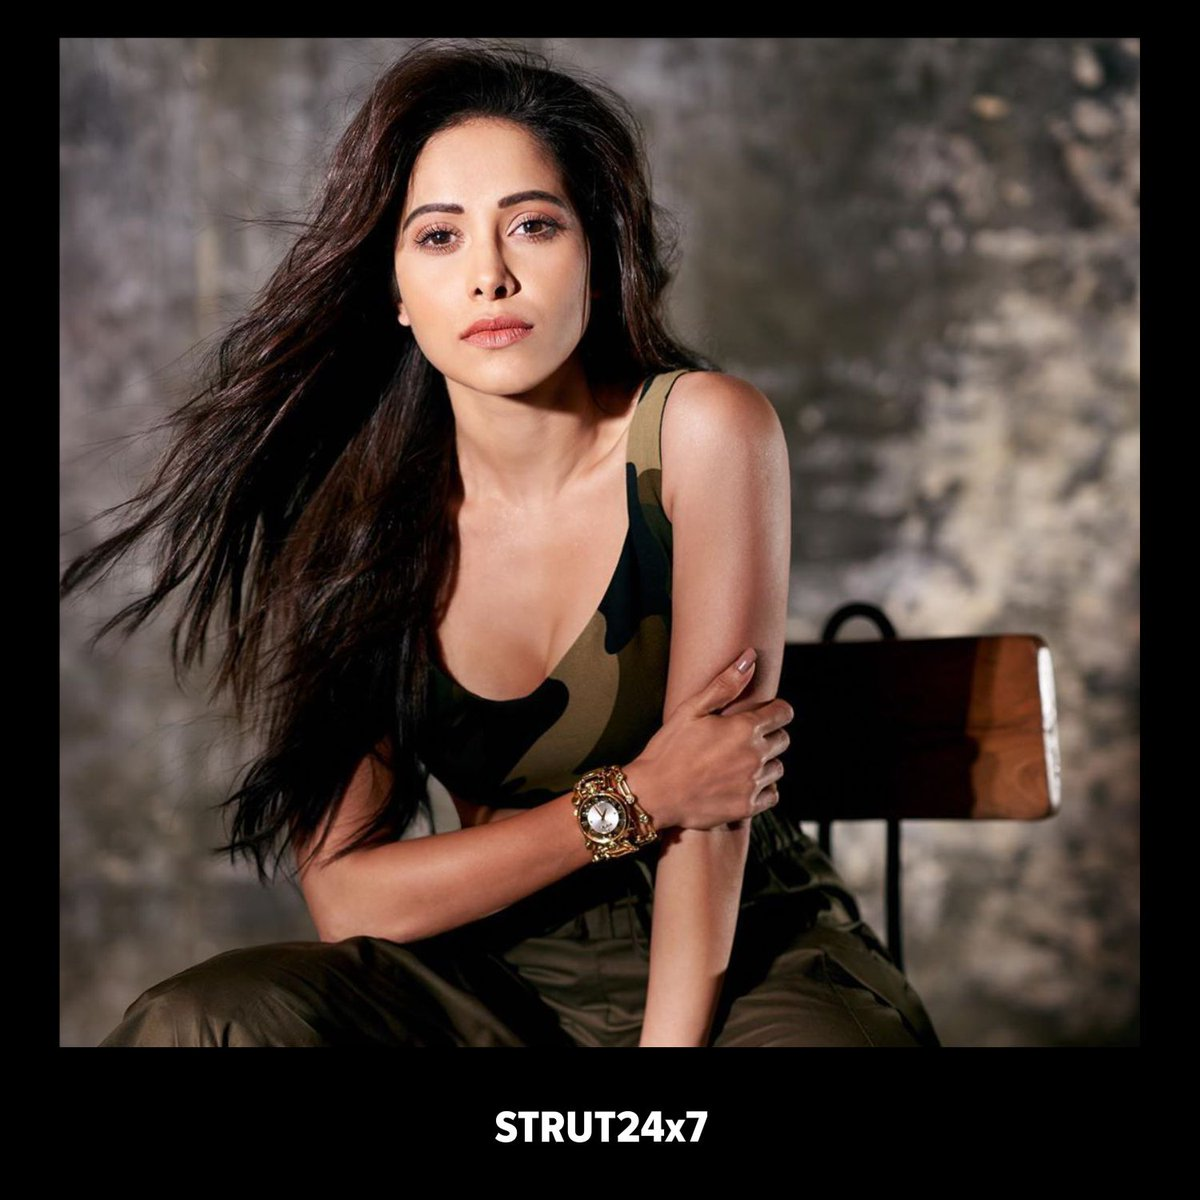 """""""Let loose"""" says the hair and yet making it all perfect @zoeyquinnyhair with her the hair can never go wrong, beautifully messed up for for @nushrrattbharuccha  #LooseHair #MessyHair #NushratBharucha #Strut24x7pic.twitter.com/W8sjnHxMKe"""